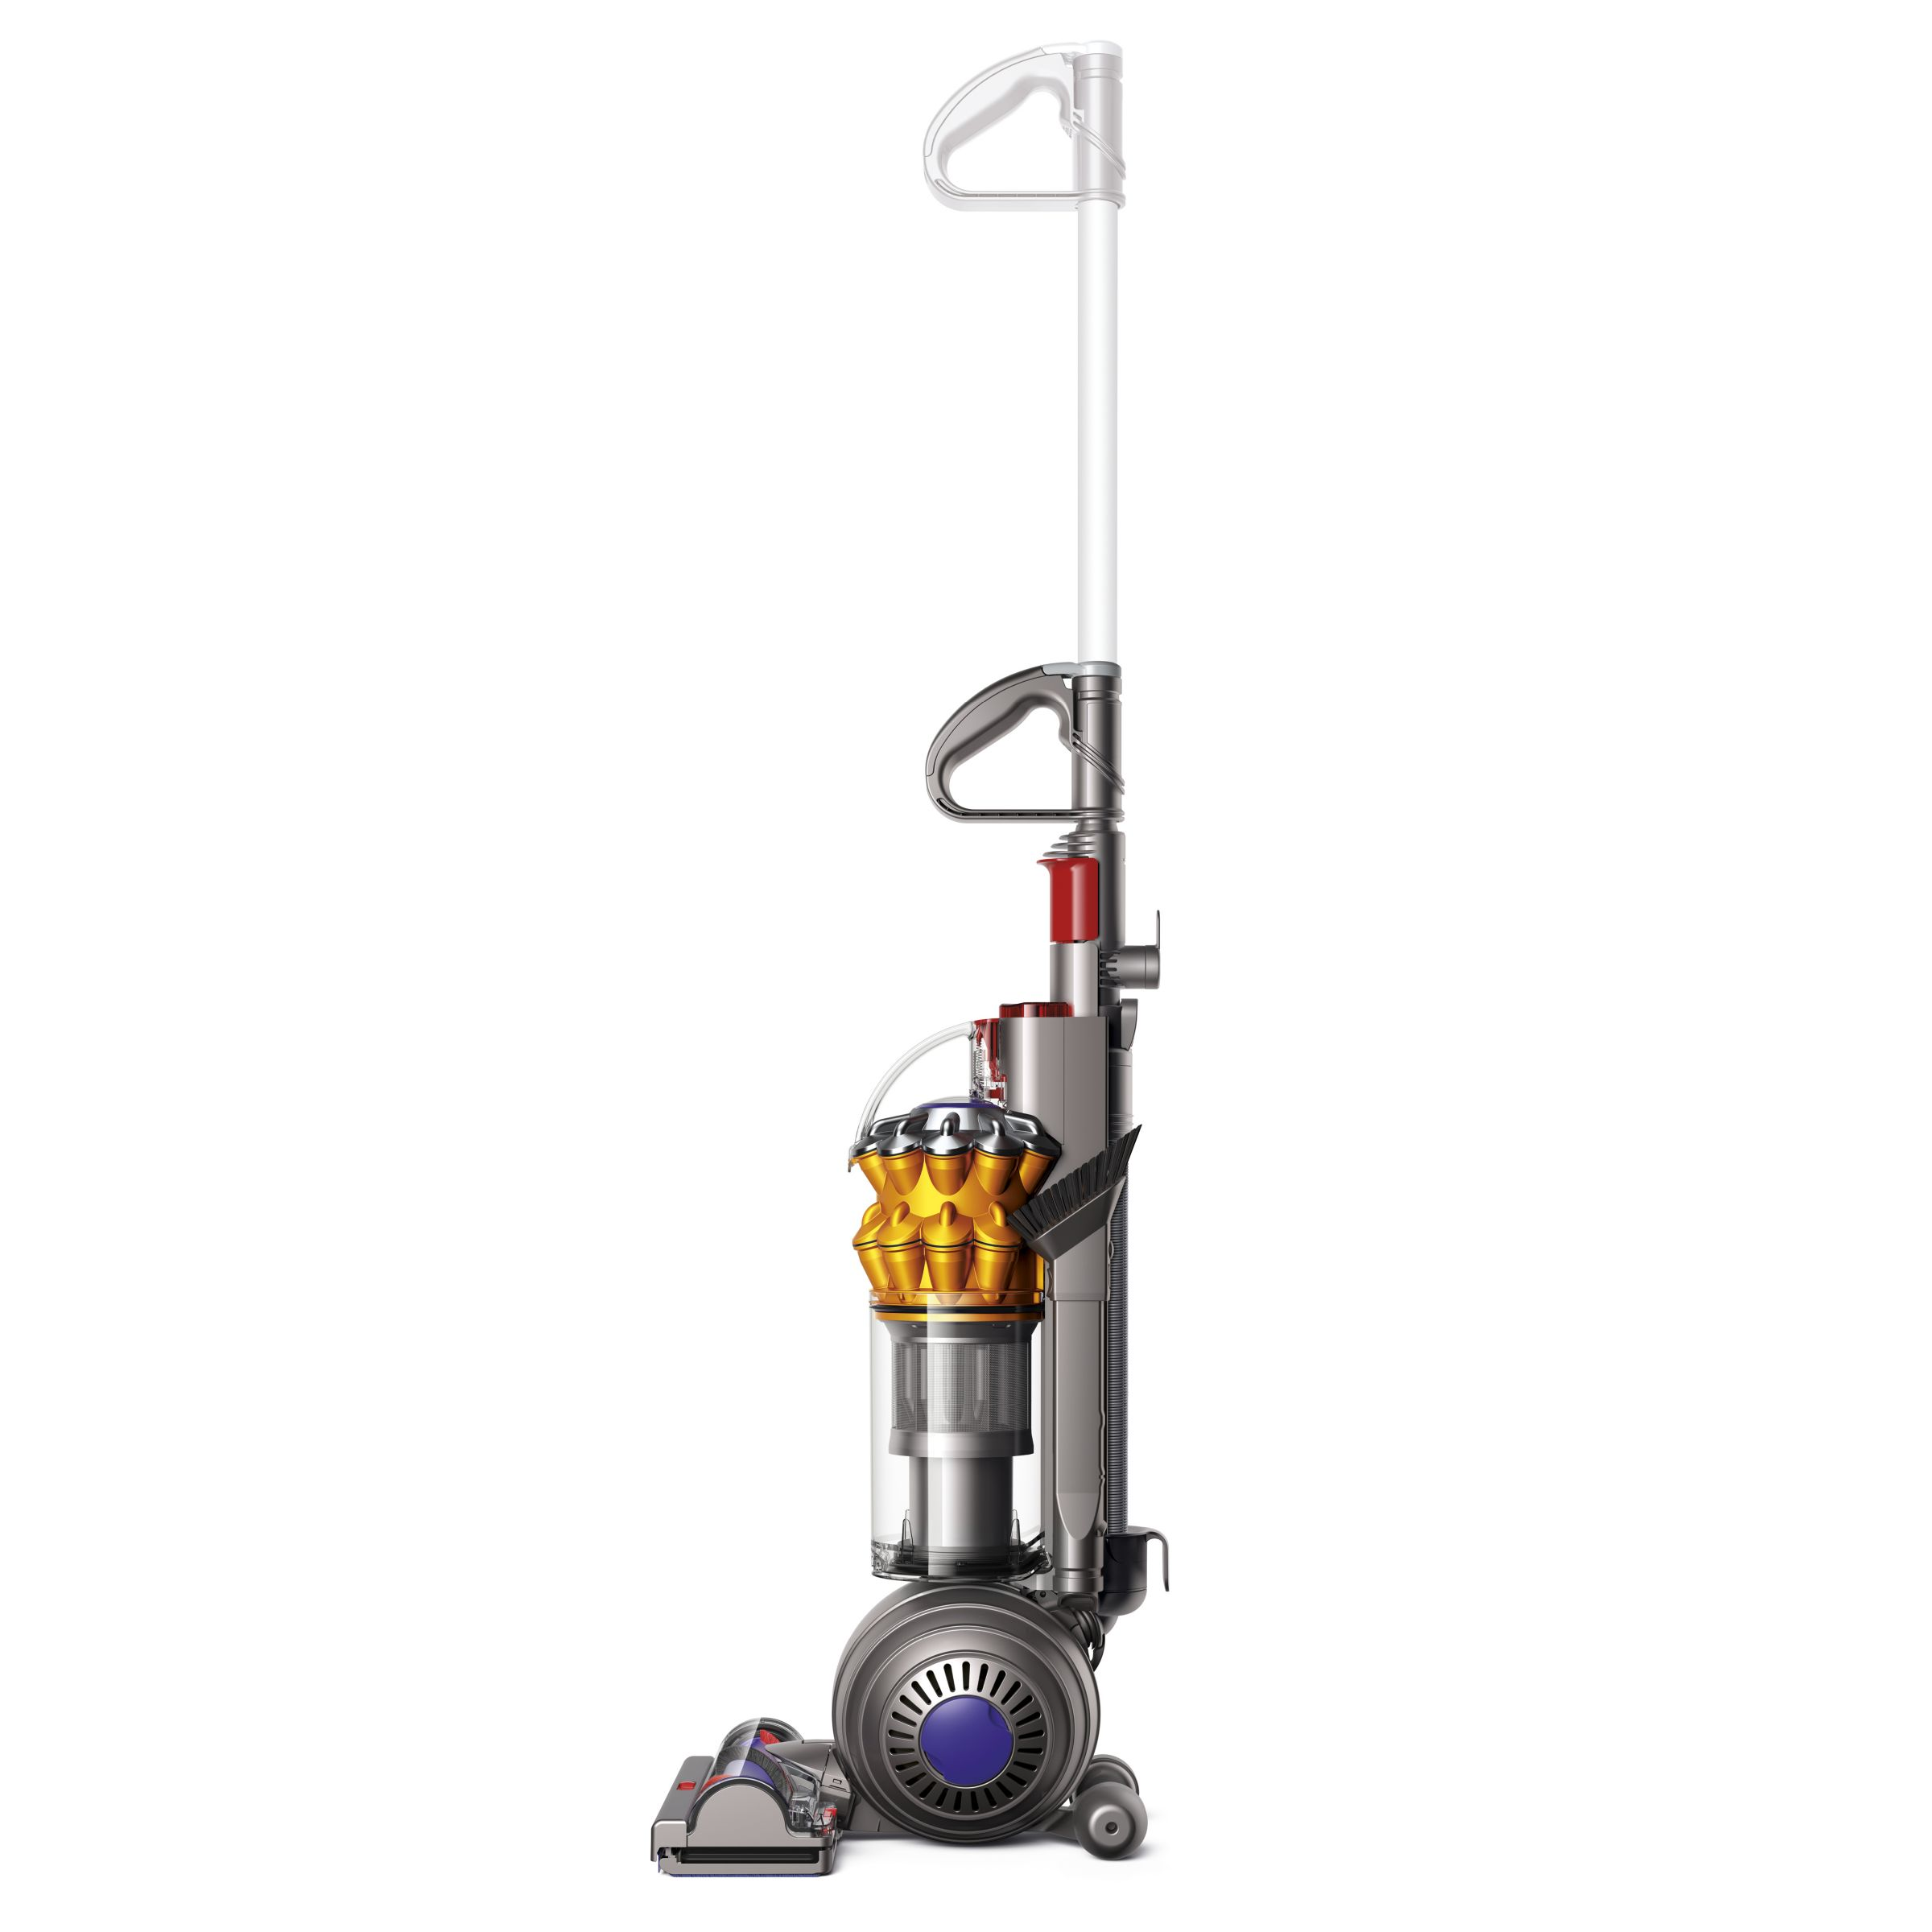 australia animal for result handheld floor dyson spares vacuum ball and multi index zoom image